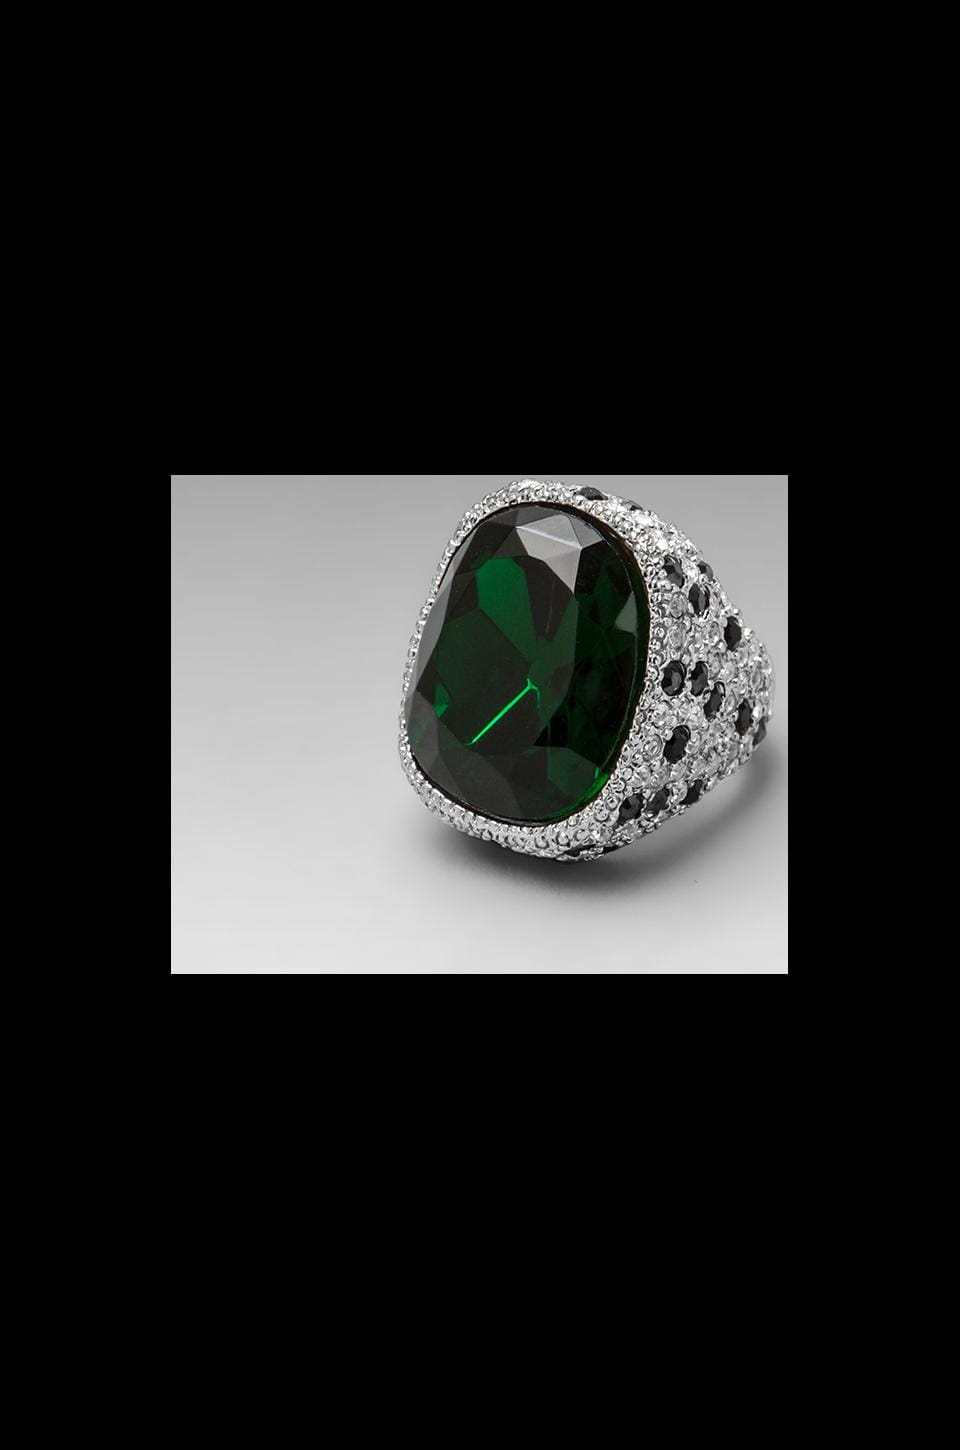 Kenneth Jay Lane Emerald Center and Jaguar Rhinestone Ring